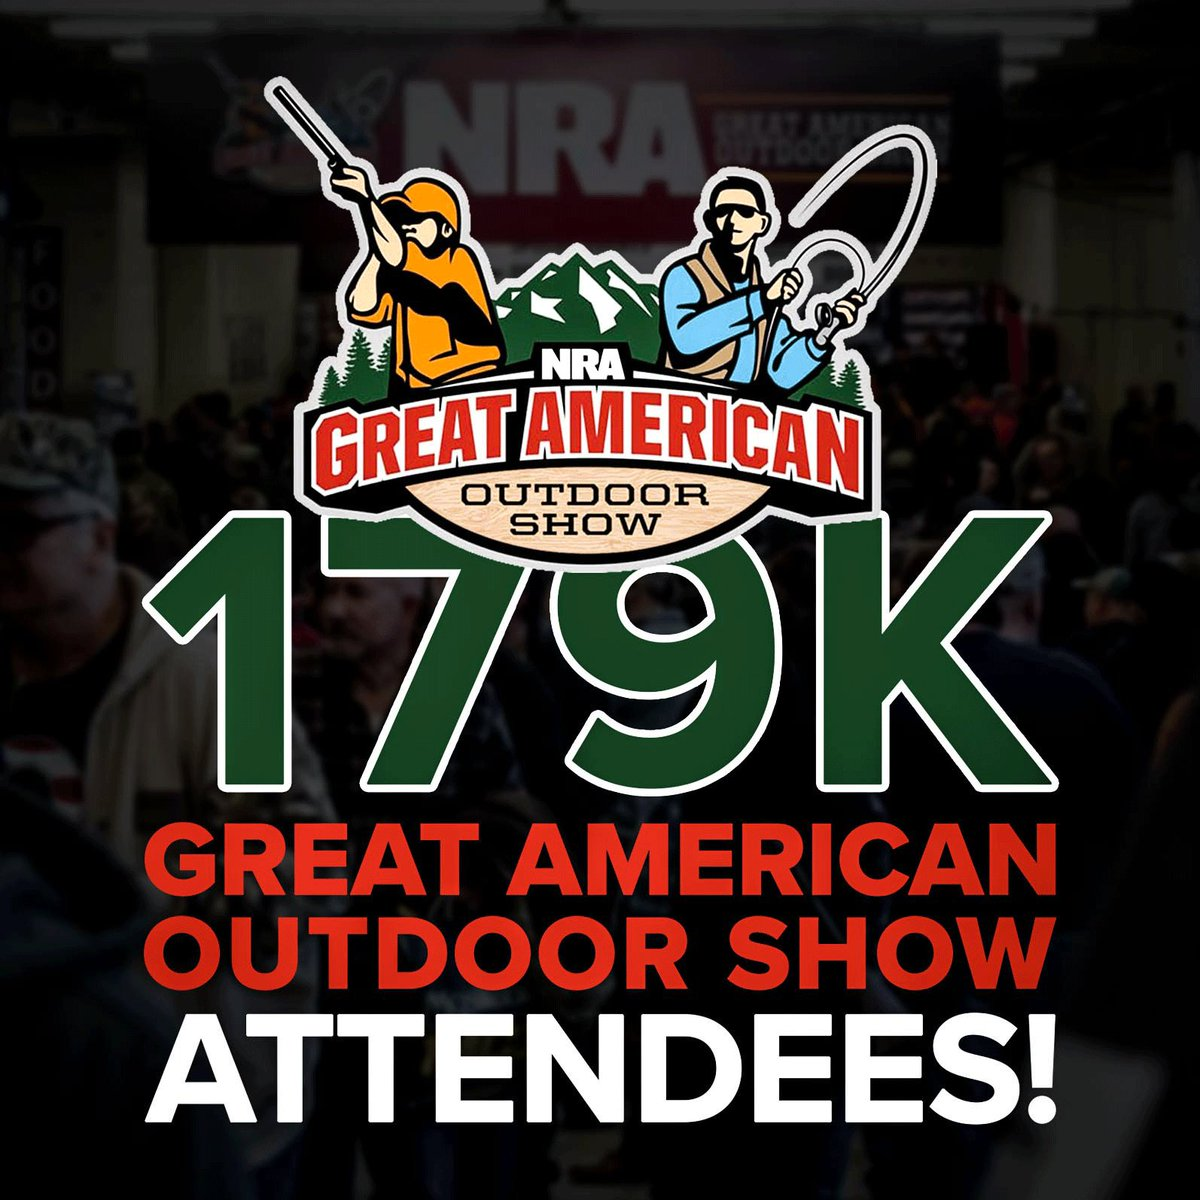 """""""A record 179,000 people visited the #NRA's 6th annual Great American Outdoor Show (#GAOS2019) Feb. 2-10 at the Pennsylvania Farm Show Complex and Expo Center in #Harrisburg."""" For more, visit → http://bit.ly/GAOSRecord @NRA_GAOS"""